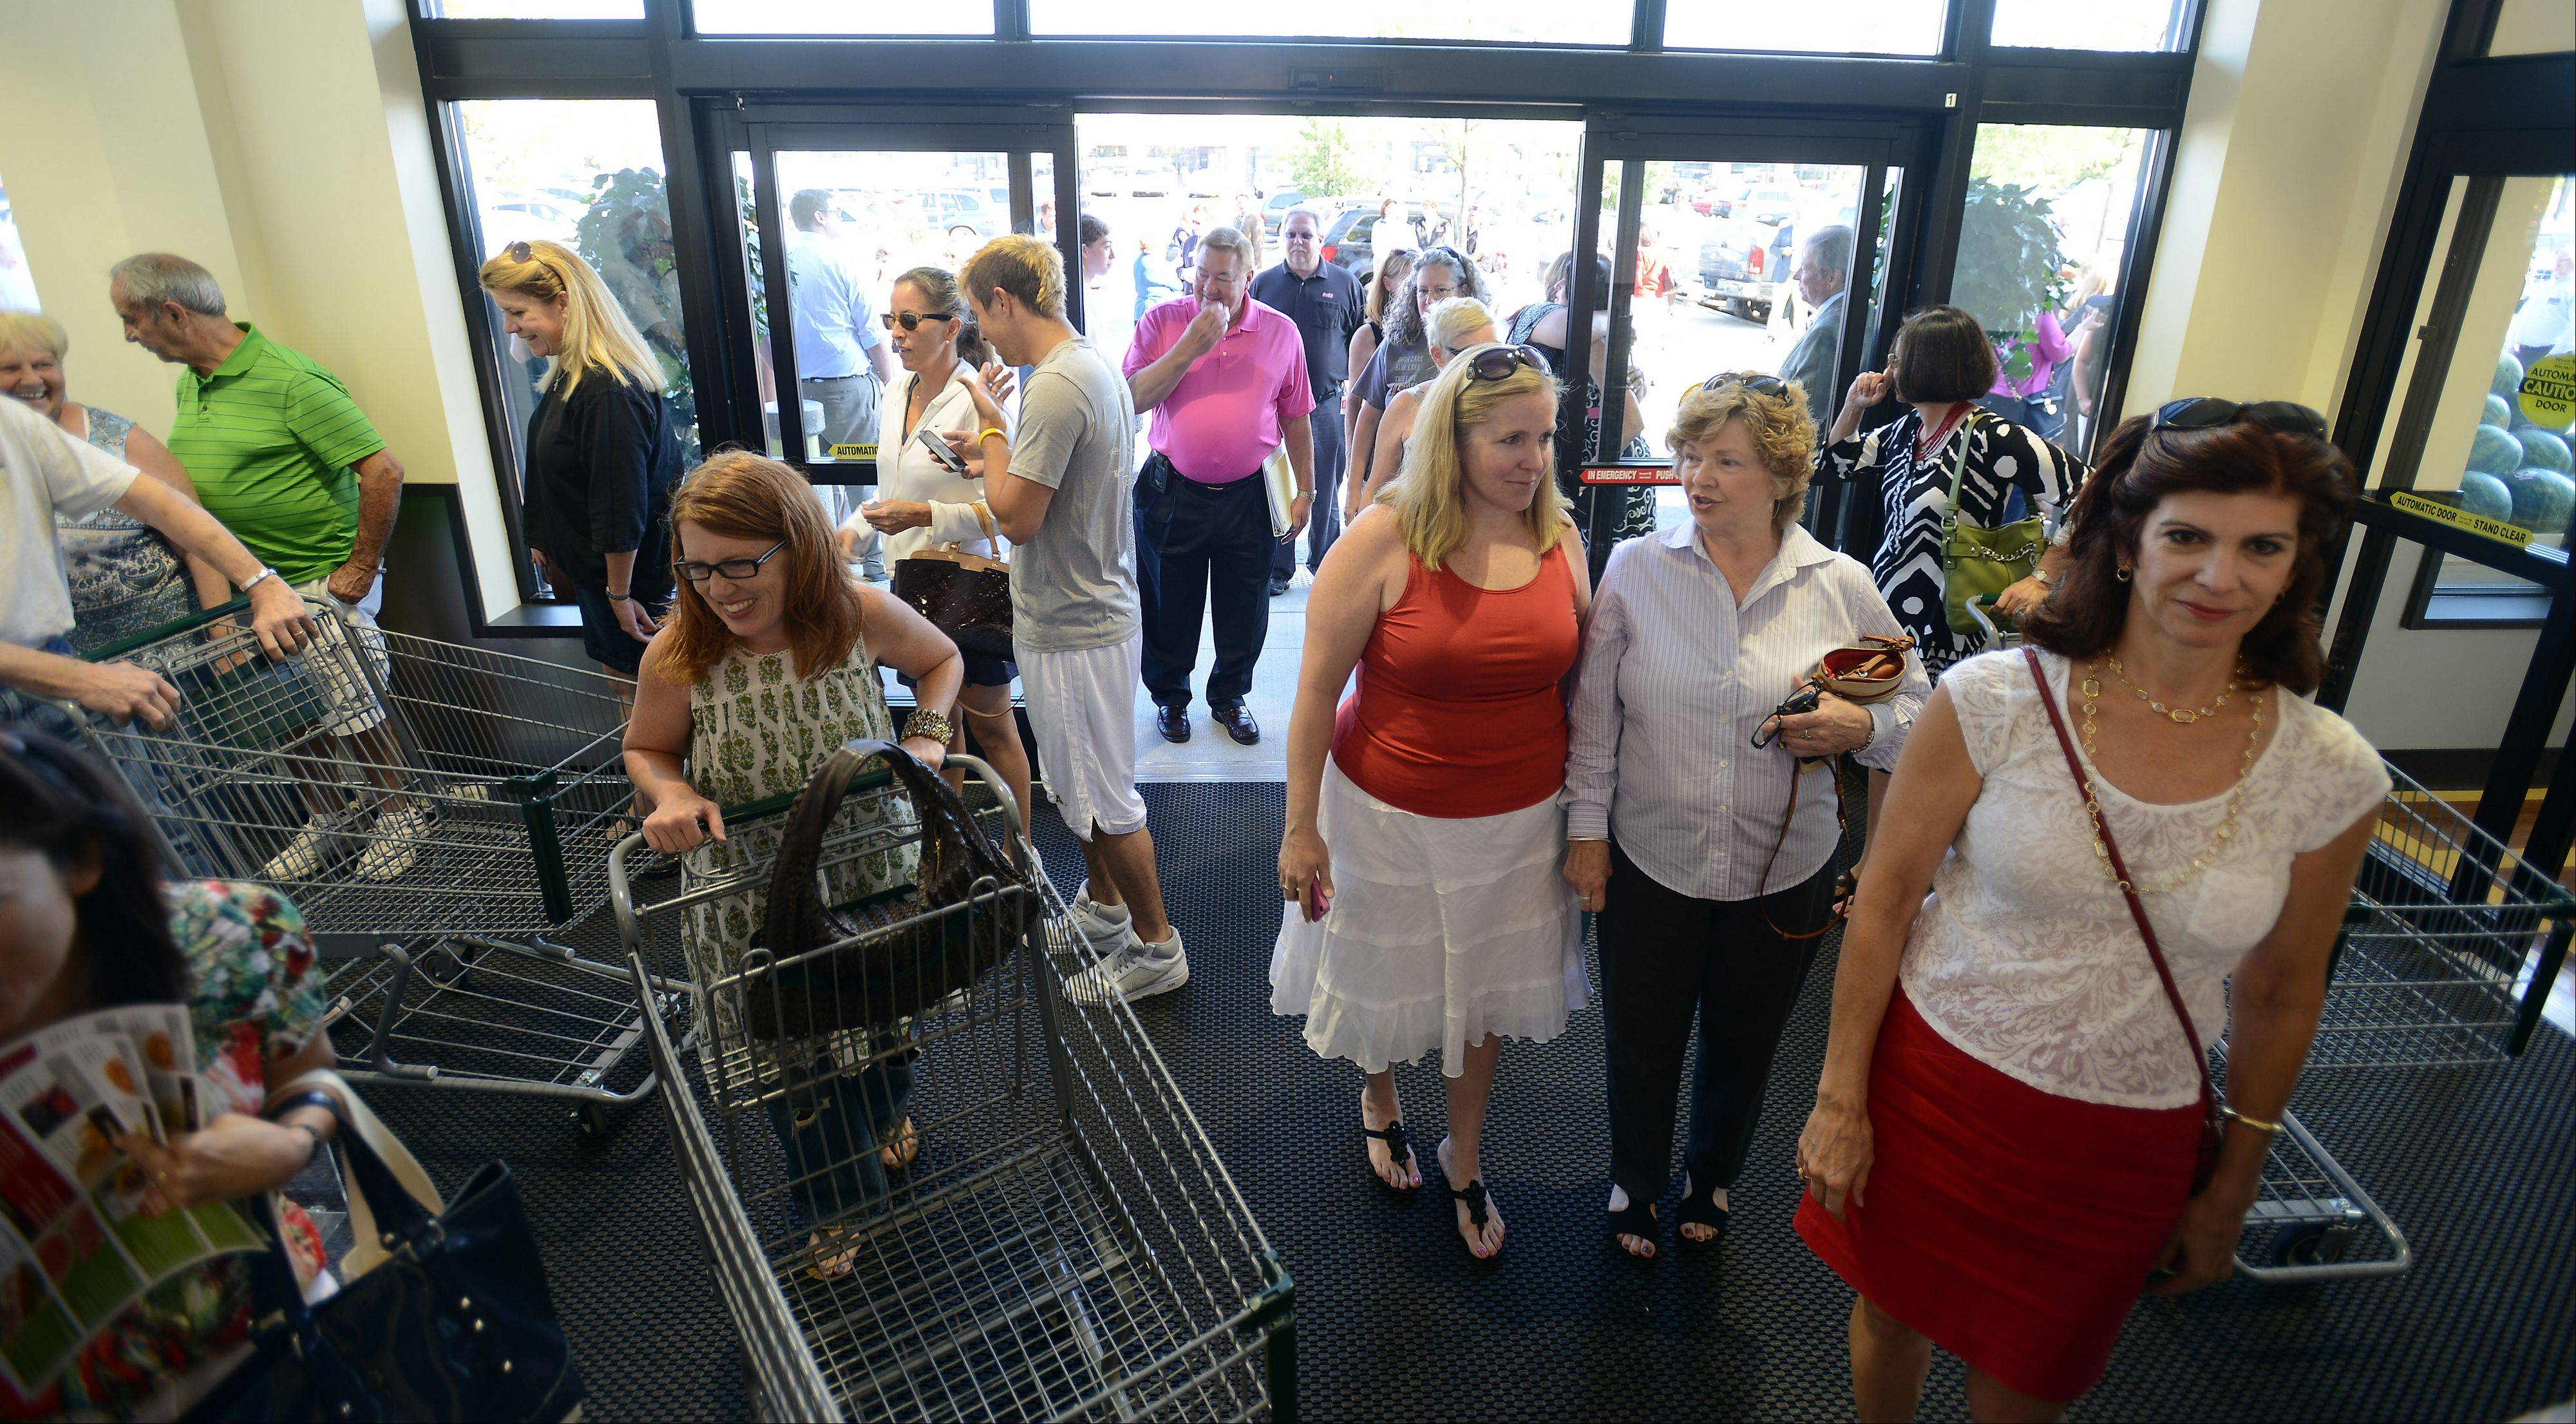 A flock of hungry shoppers was waiting Wednesday morning when Heinen's Fine Foods opened its doors in Barrington. The store is the Cleveland-based chain's first in the Chicago area.